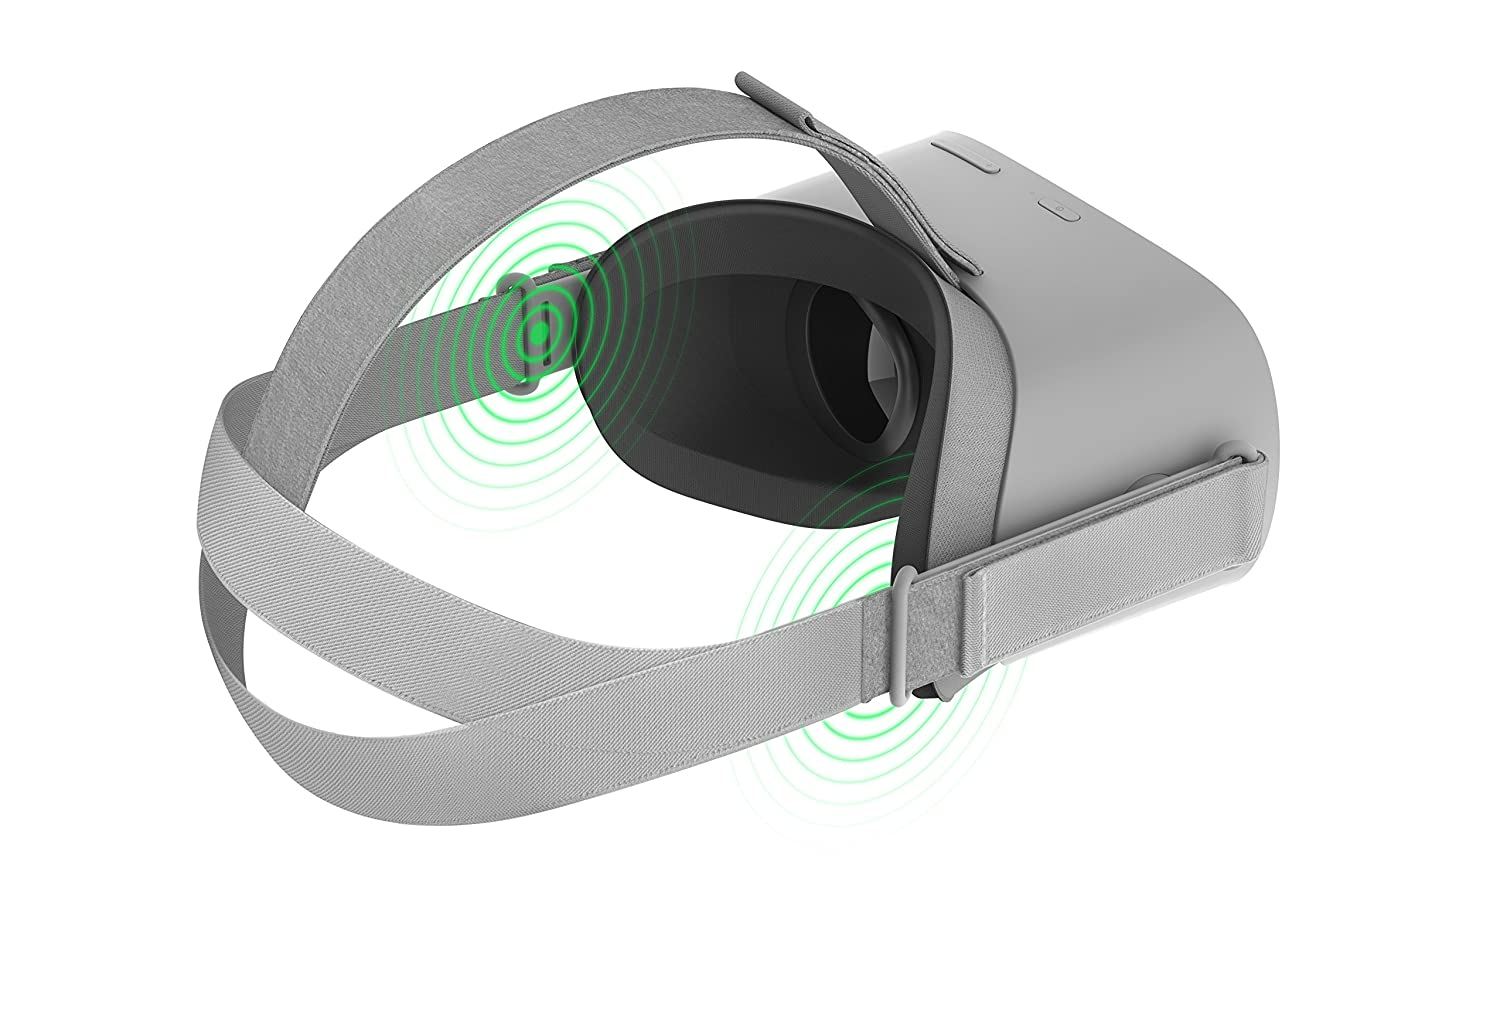 Oculus Go 64GB - Standalone Virtual Reality Headset: Amazon.de: Games